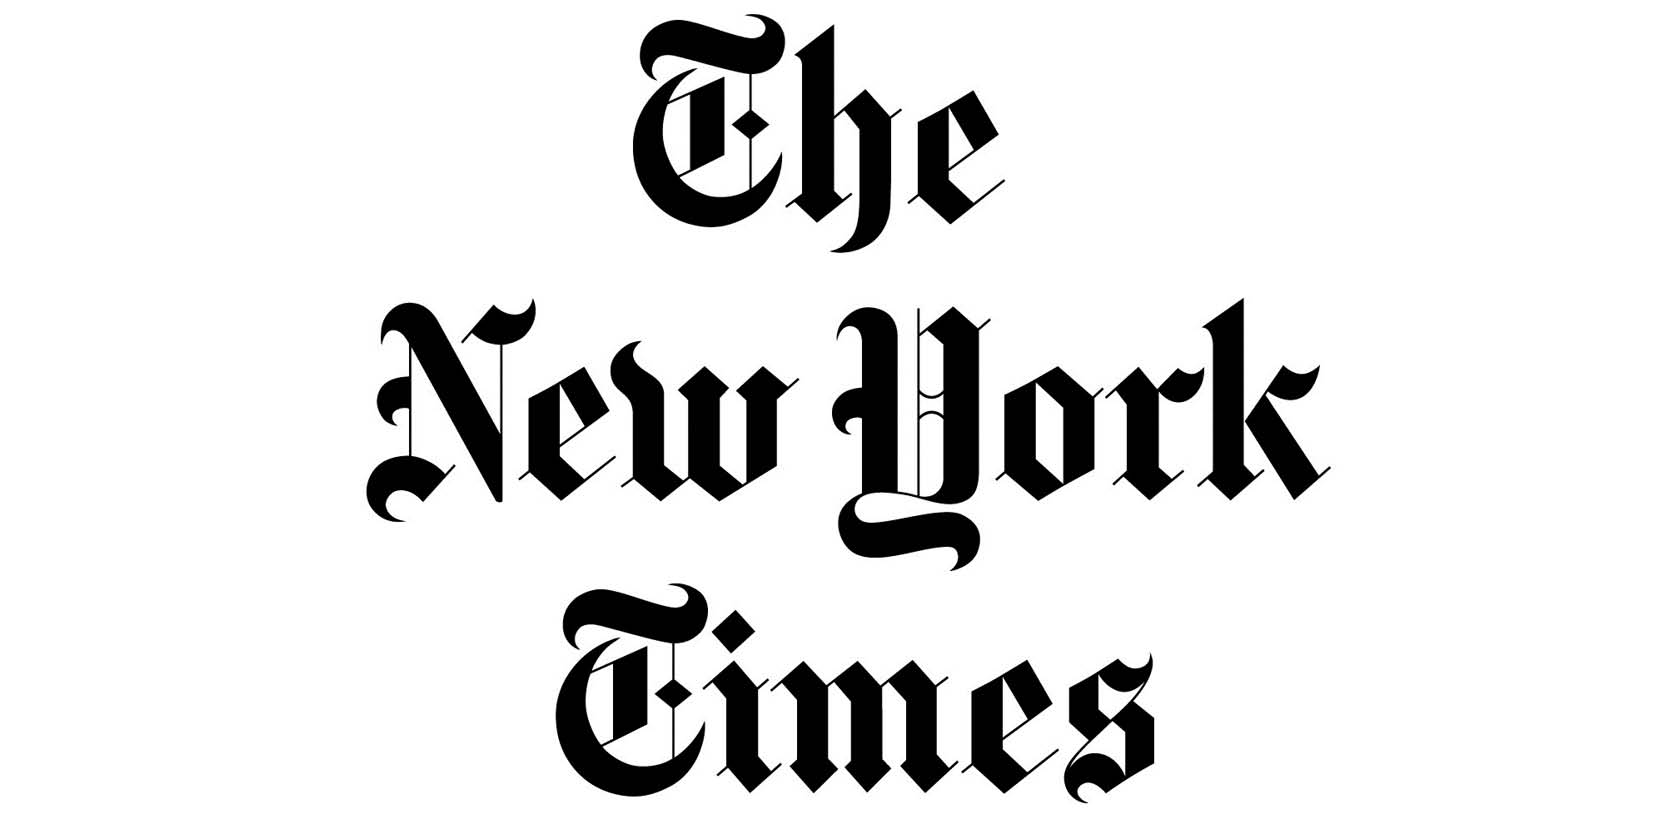 The New York Times: Hacking Attack Has Security Experts Scrambling to Contain Fallout